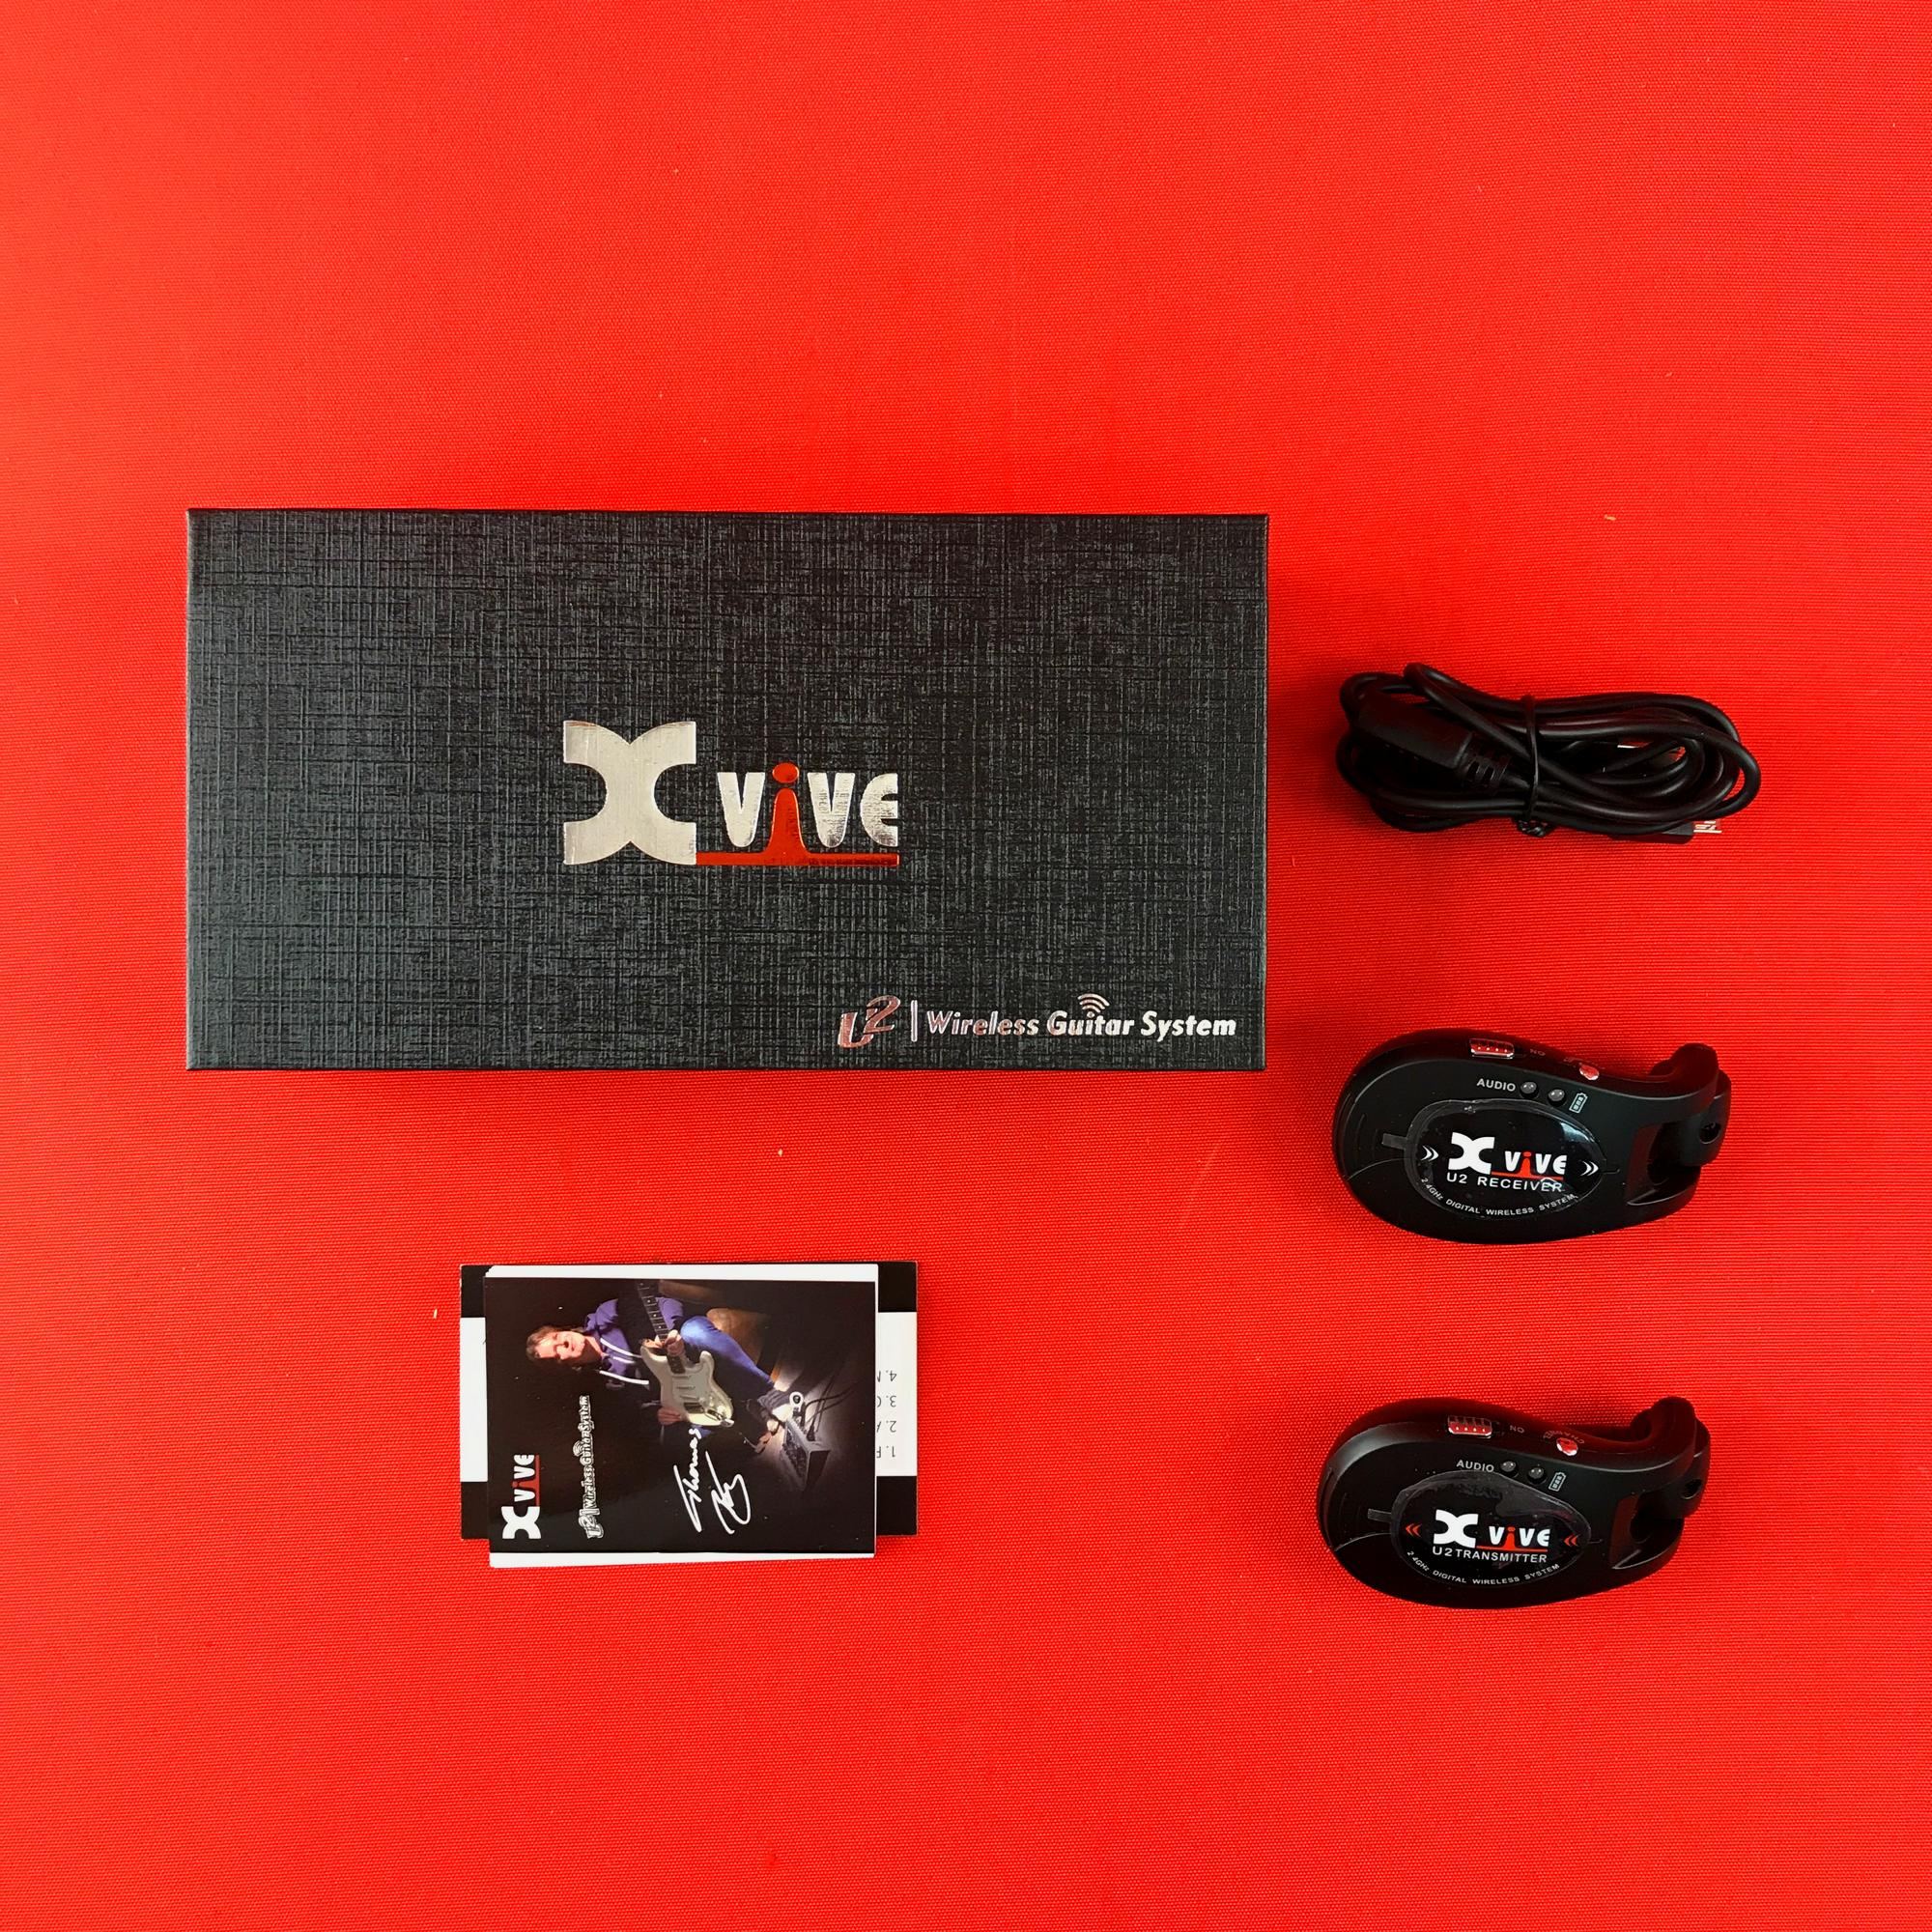 [USED] Xvive U2 2.4GHZ Wireless Guitar System, Black